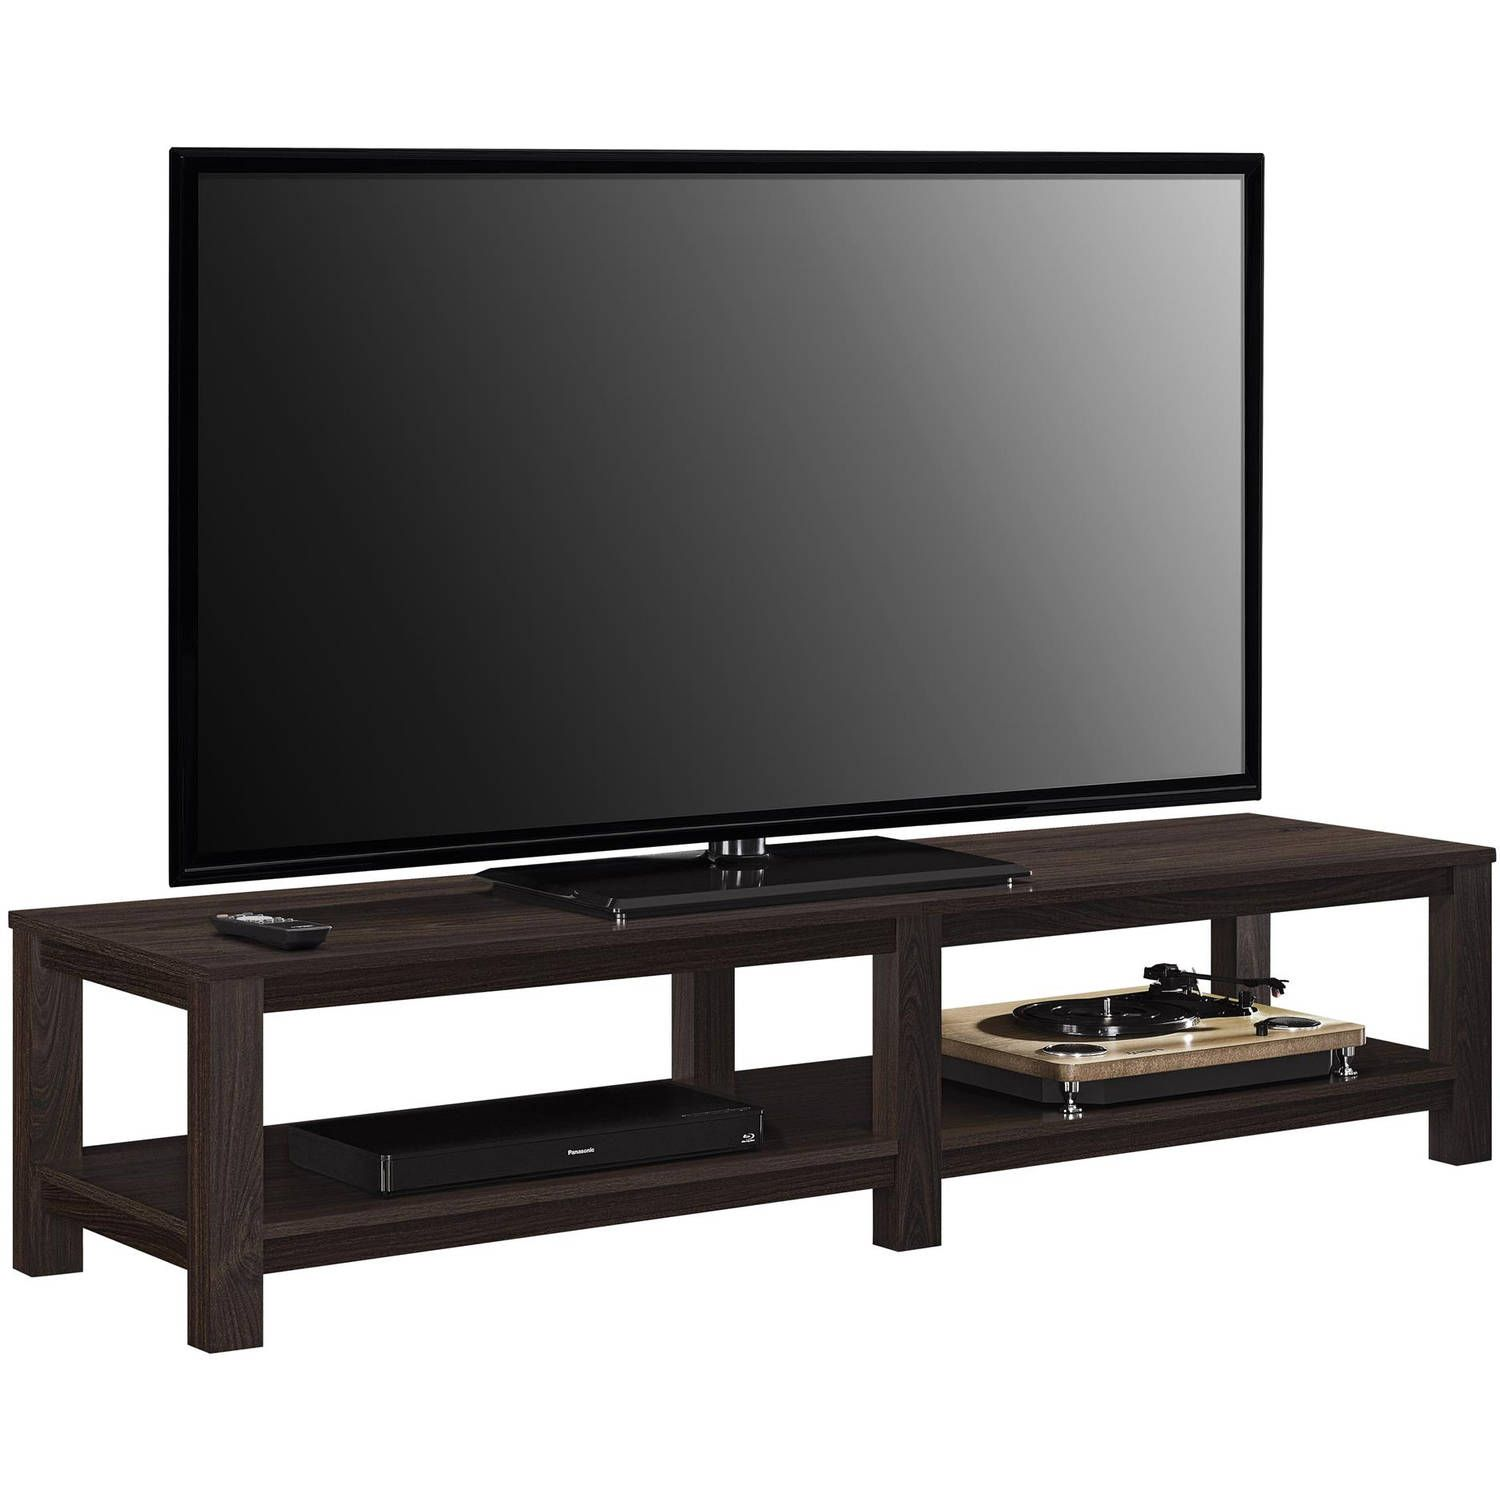 93 Reference Of Slim Tv Stands Flat Screens Tv Stand With Storage Tv Stand 65 Tv Stand